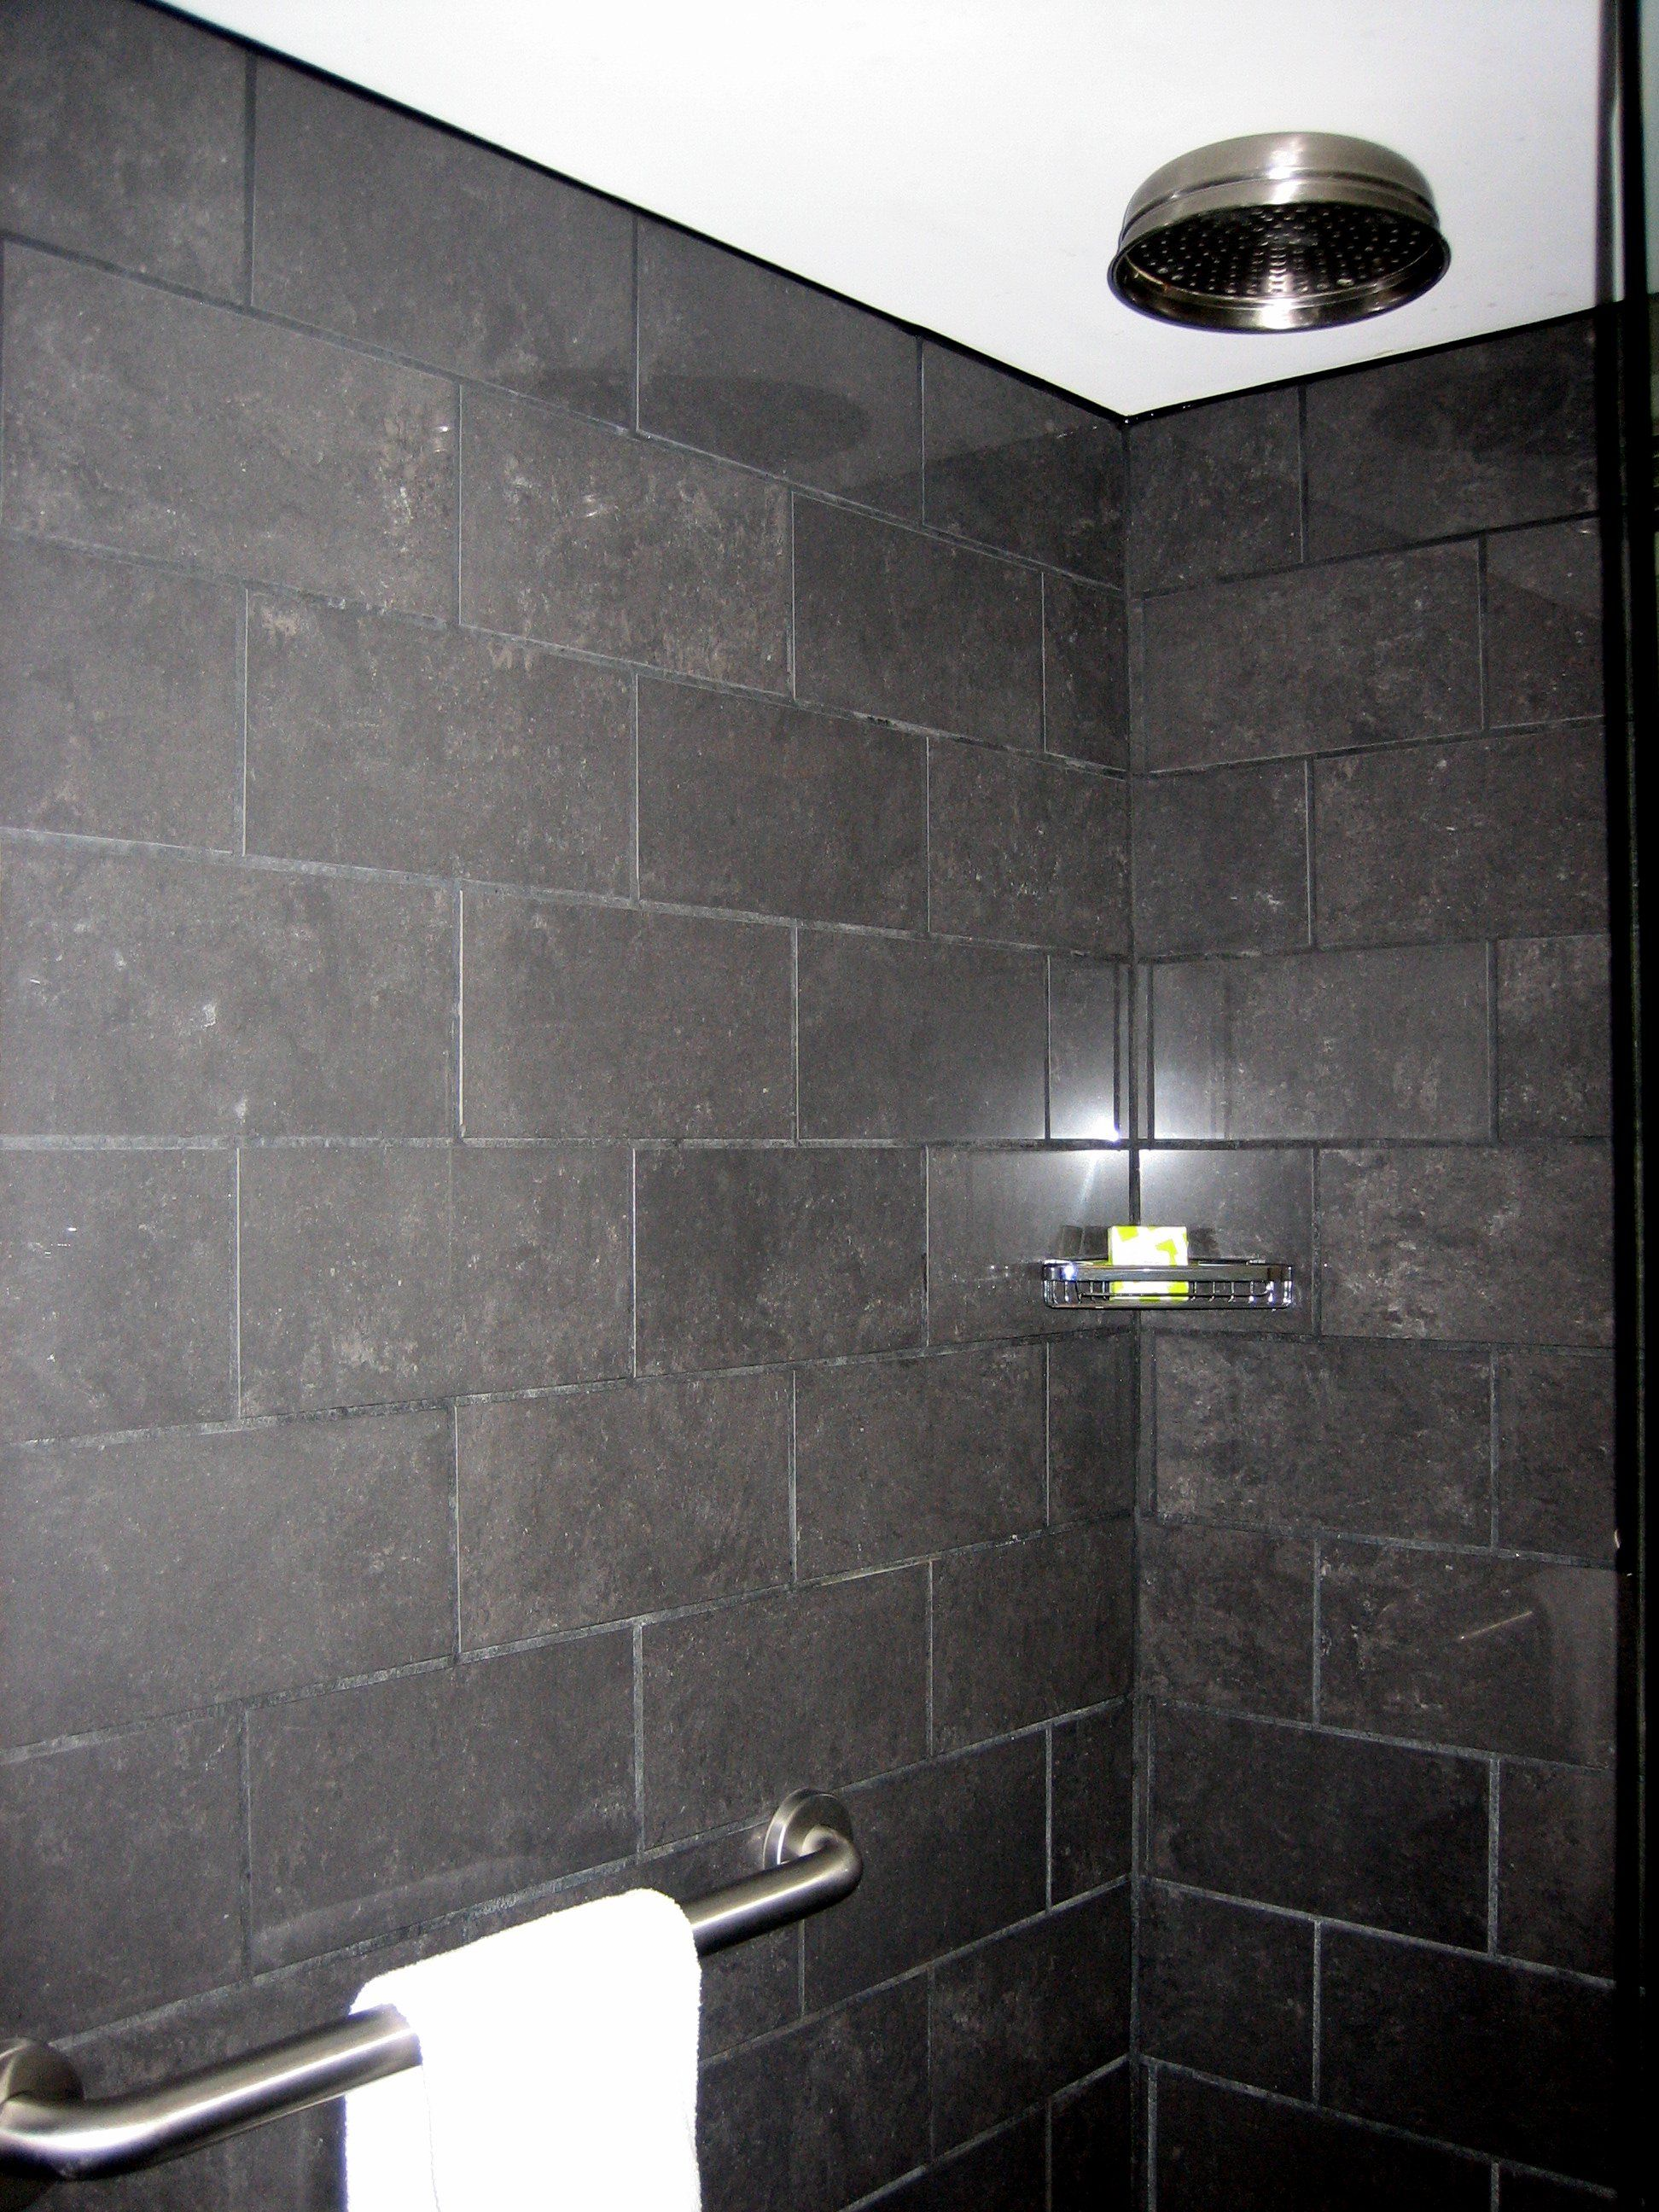 12x24 Tile Installed Horizontal Brick Pattern Rain Head Tile Bathroom Brick Patterns Tile Installation